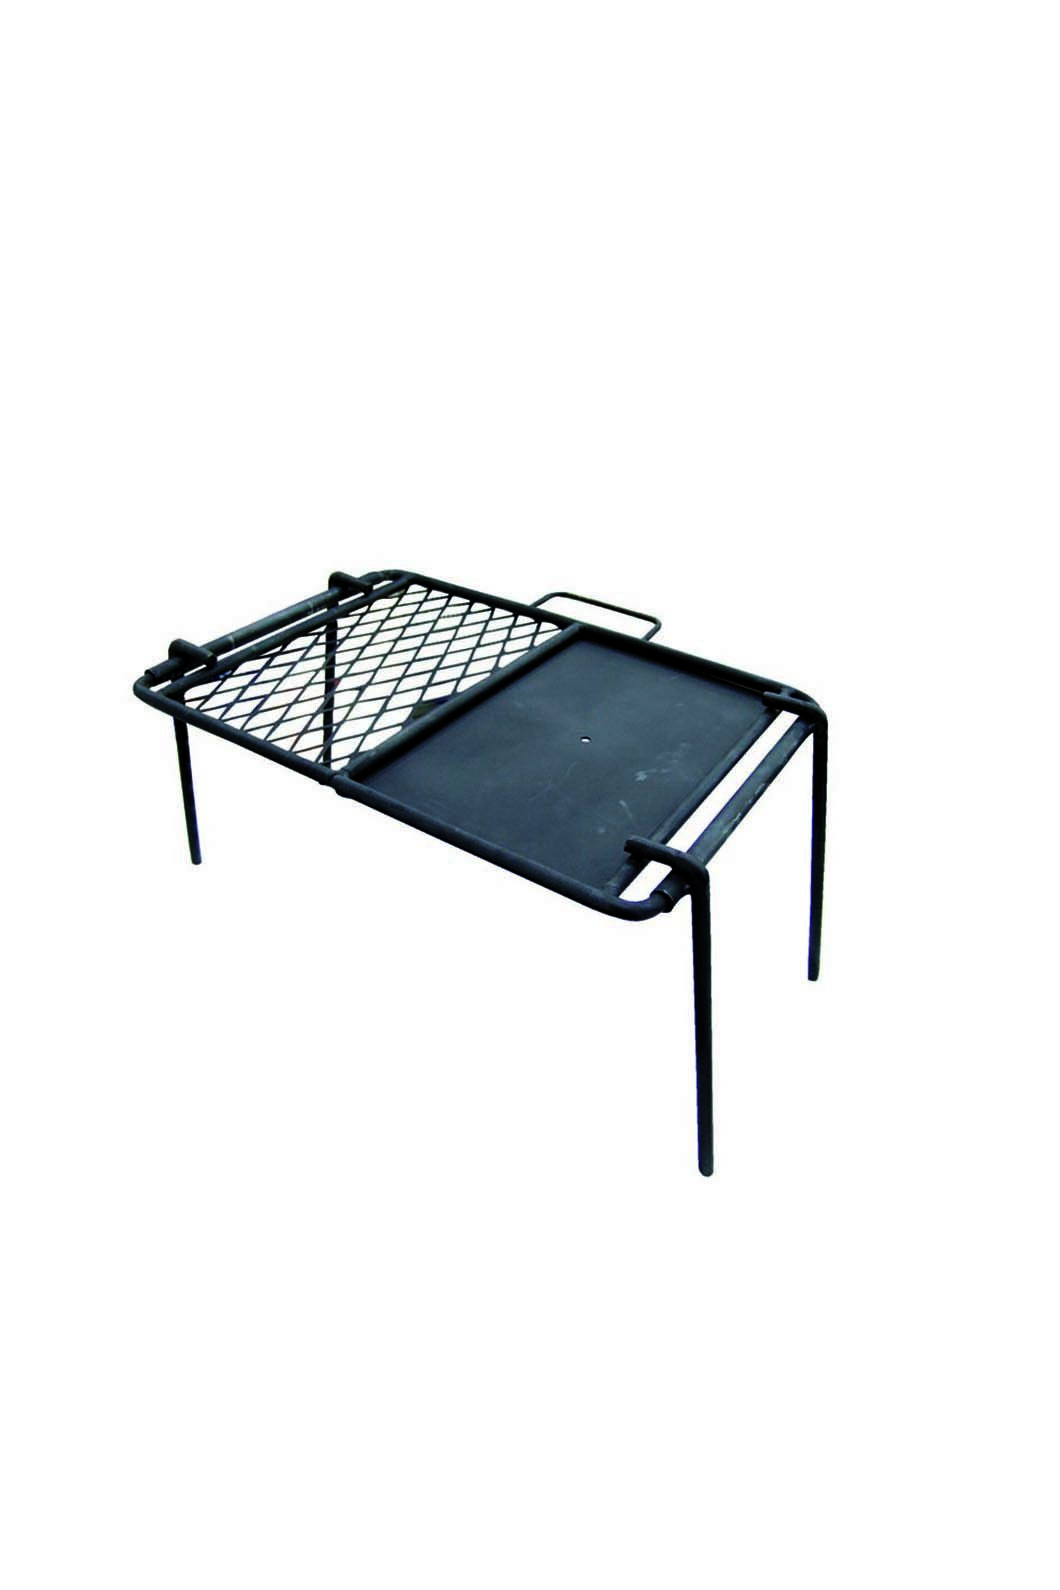 Campfire Mesh Grill and Flat Plate Combo 43x33cm, None, hi-res